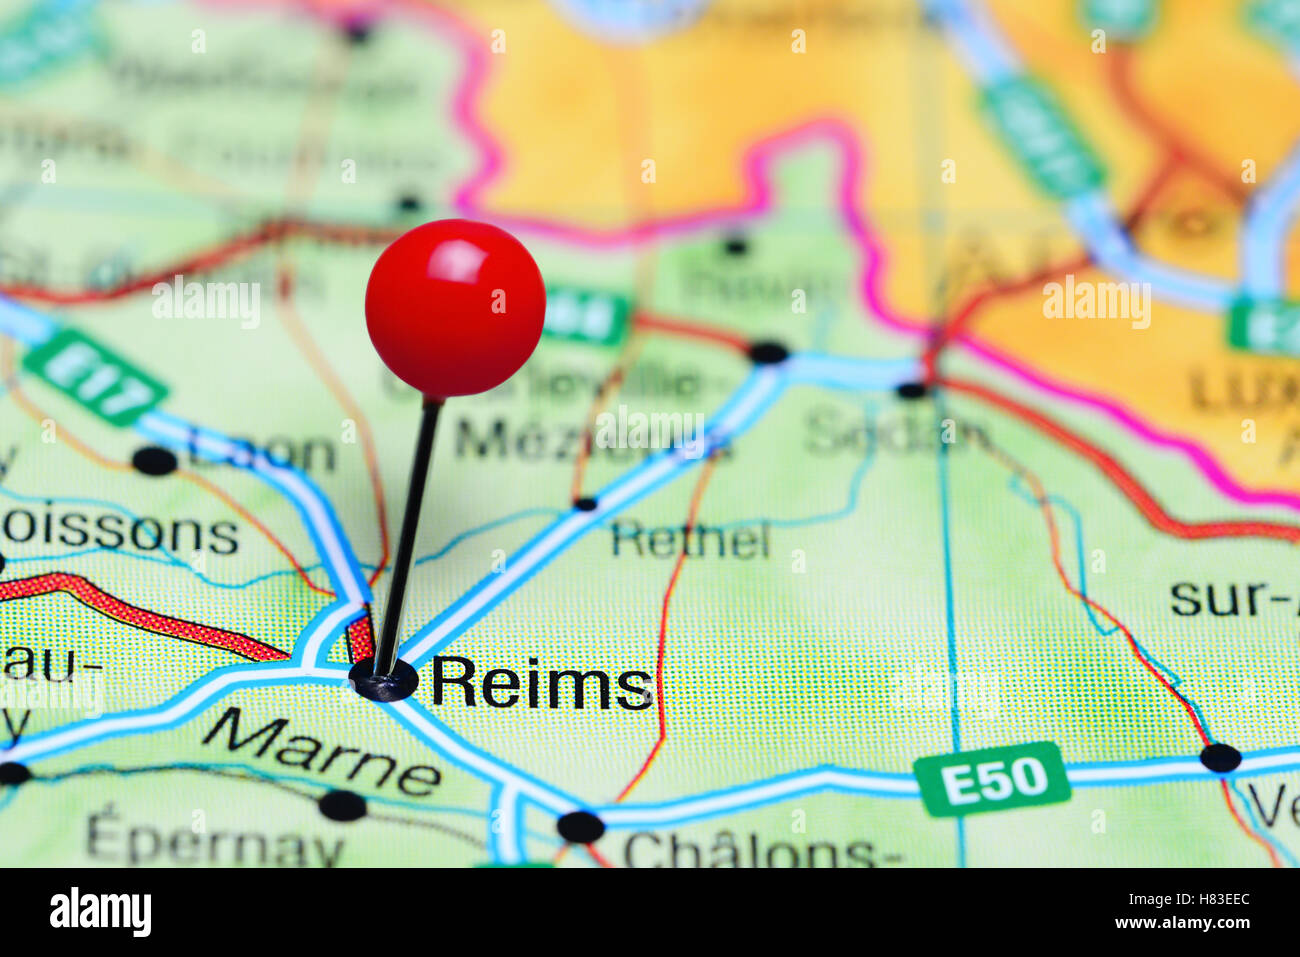 Reims pinned on a map of France Stock Photo 125467060 Alamy